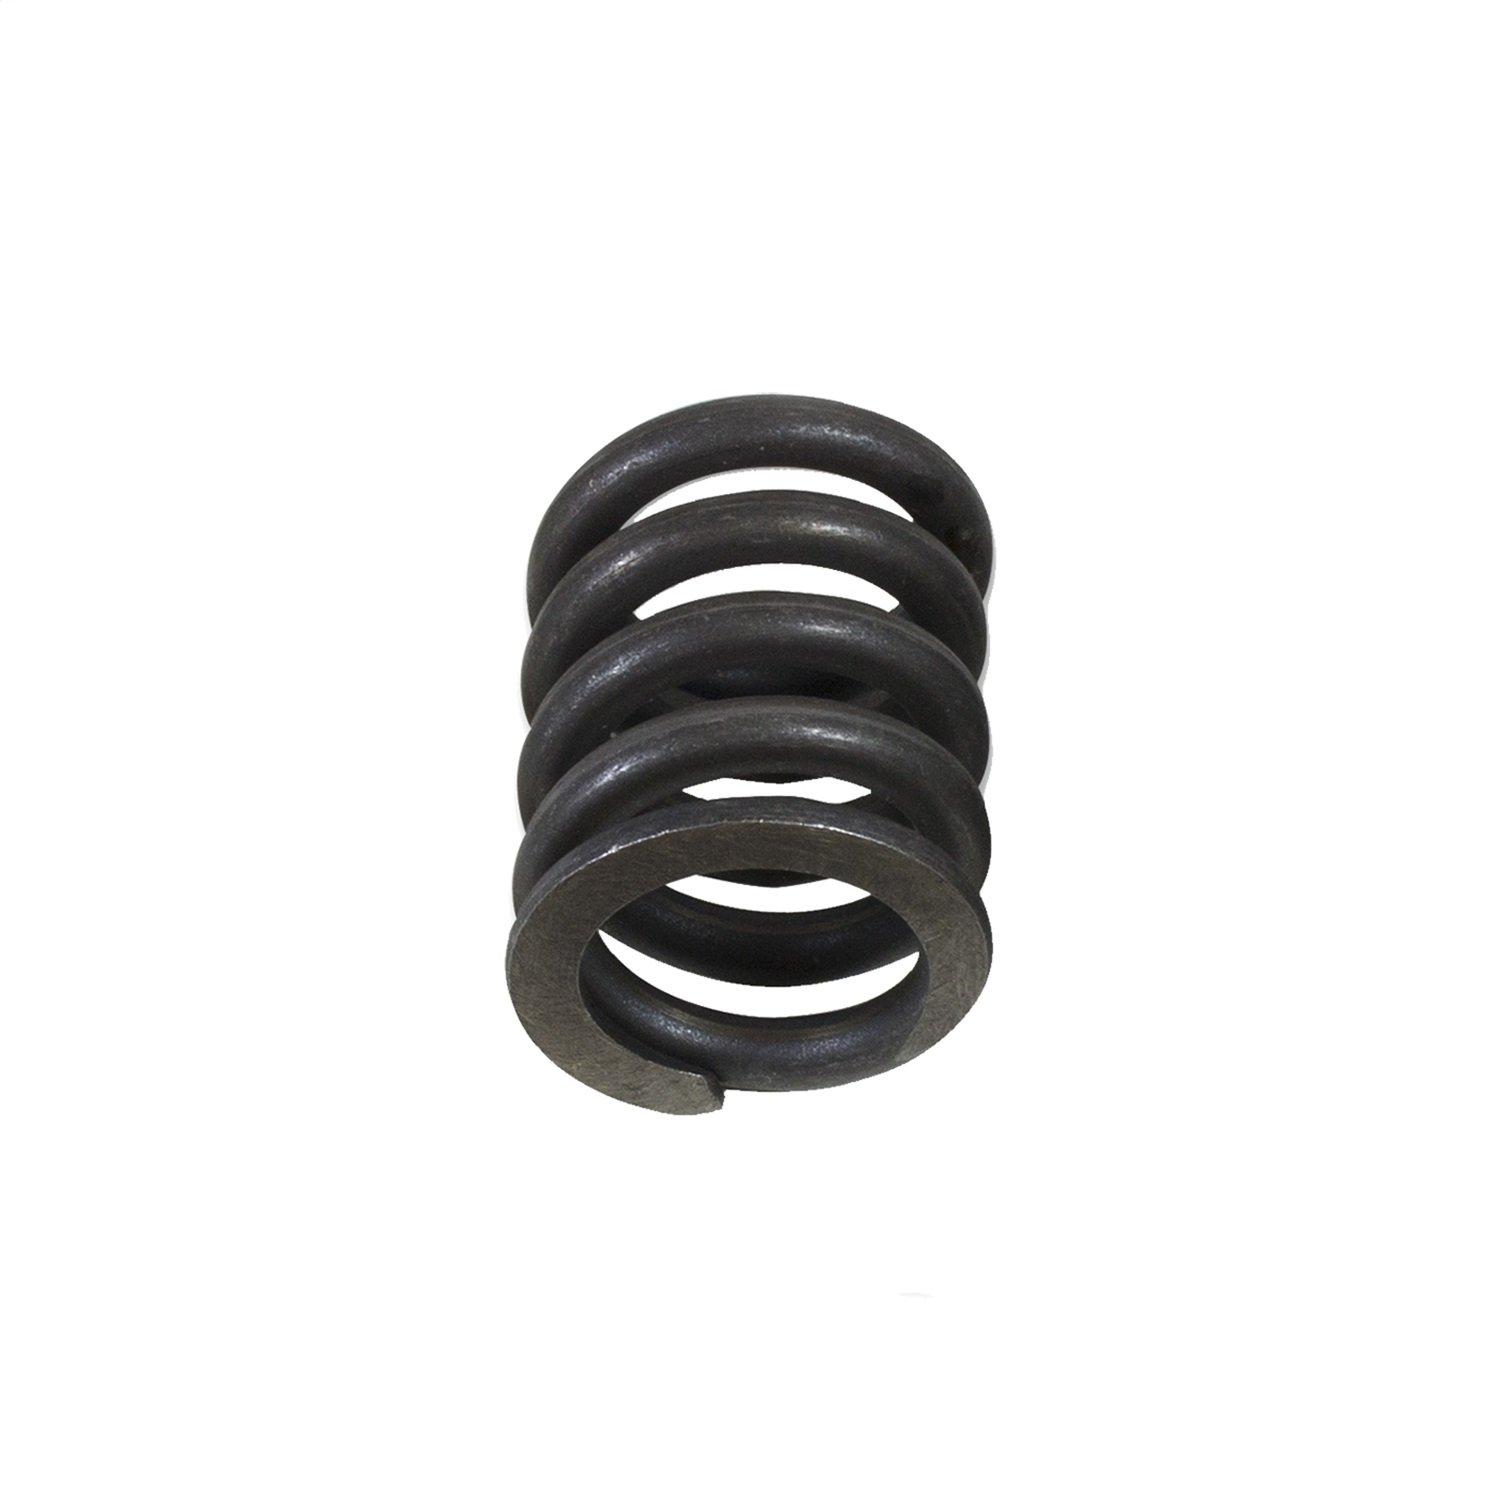 Yukon (YP KP-003) Upper Replacement King-Pin Bushing Spring for Dana 60 Differential by Yukon Gear (Image #1)